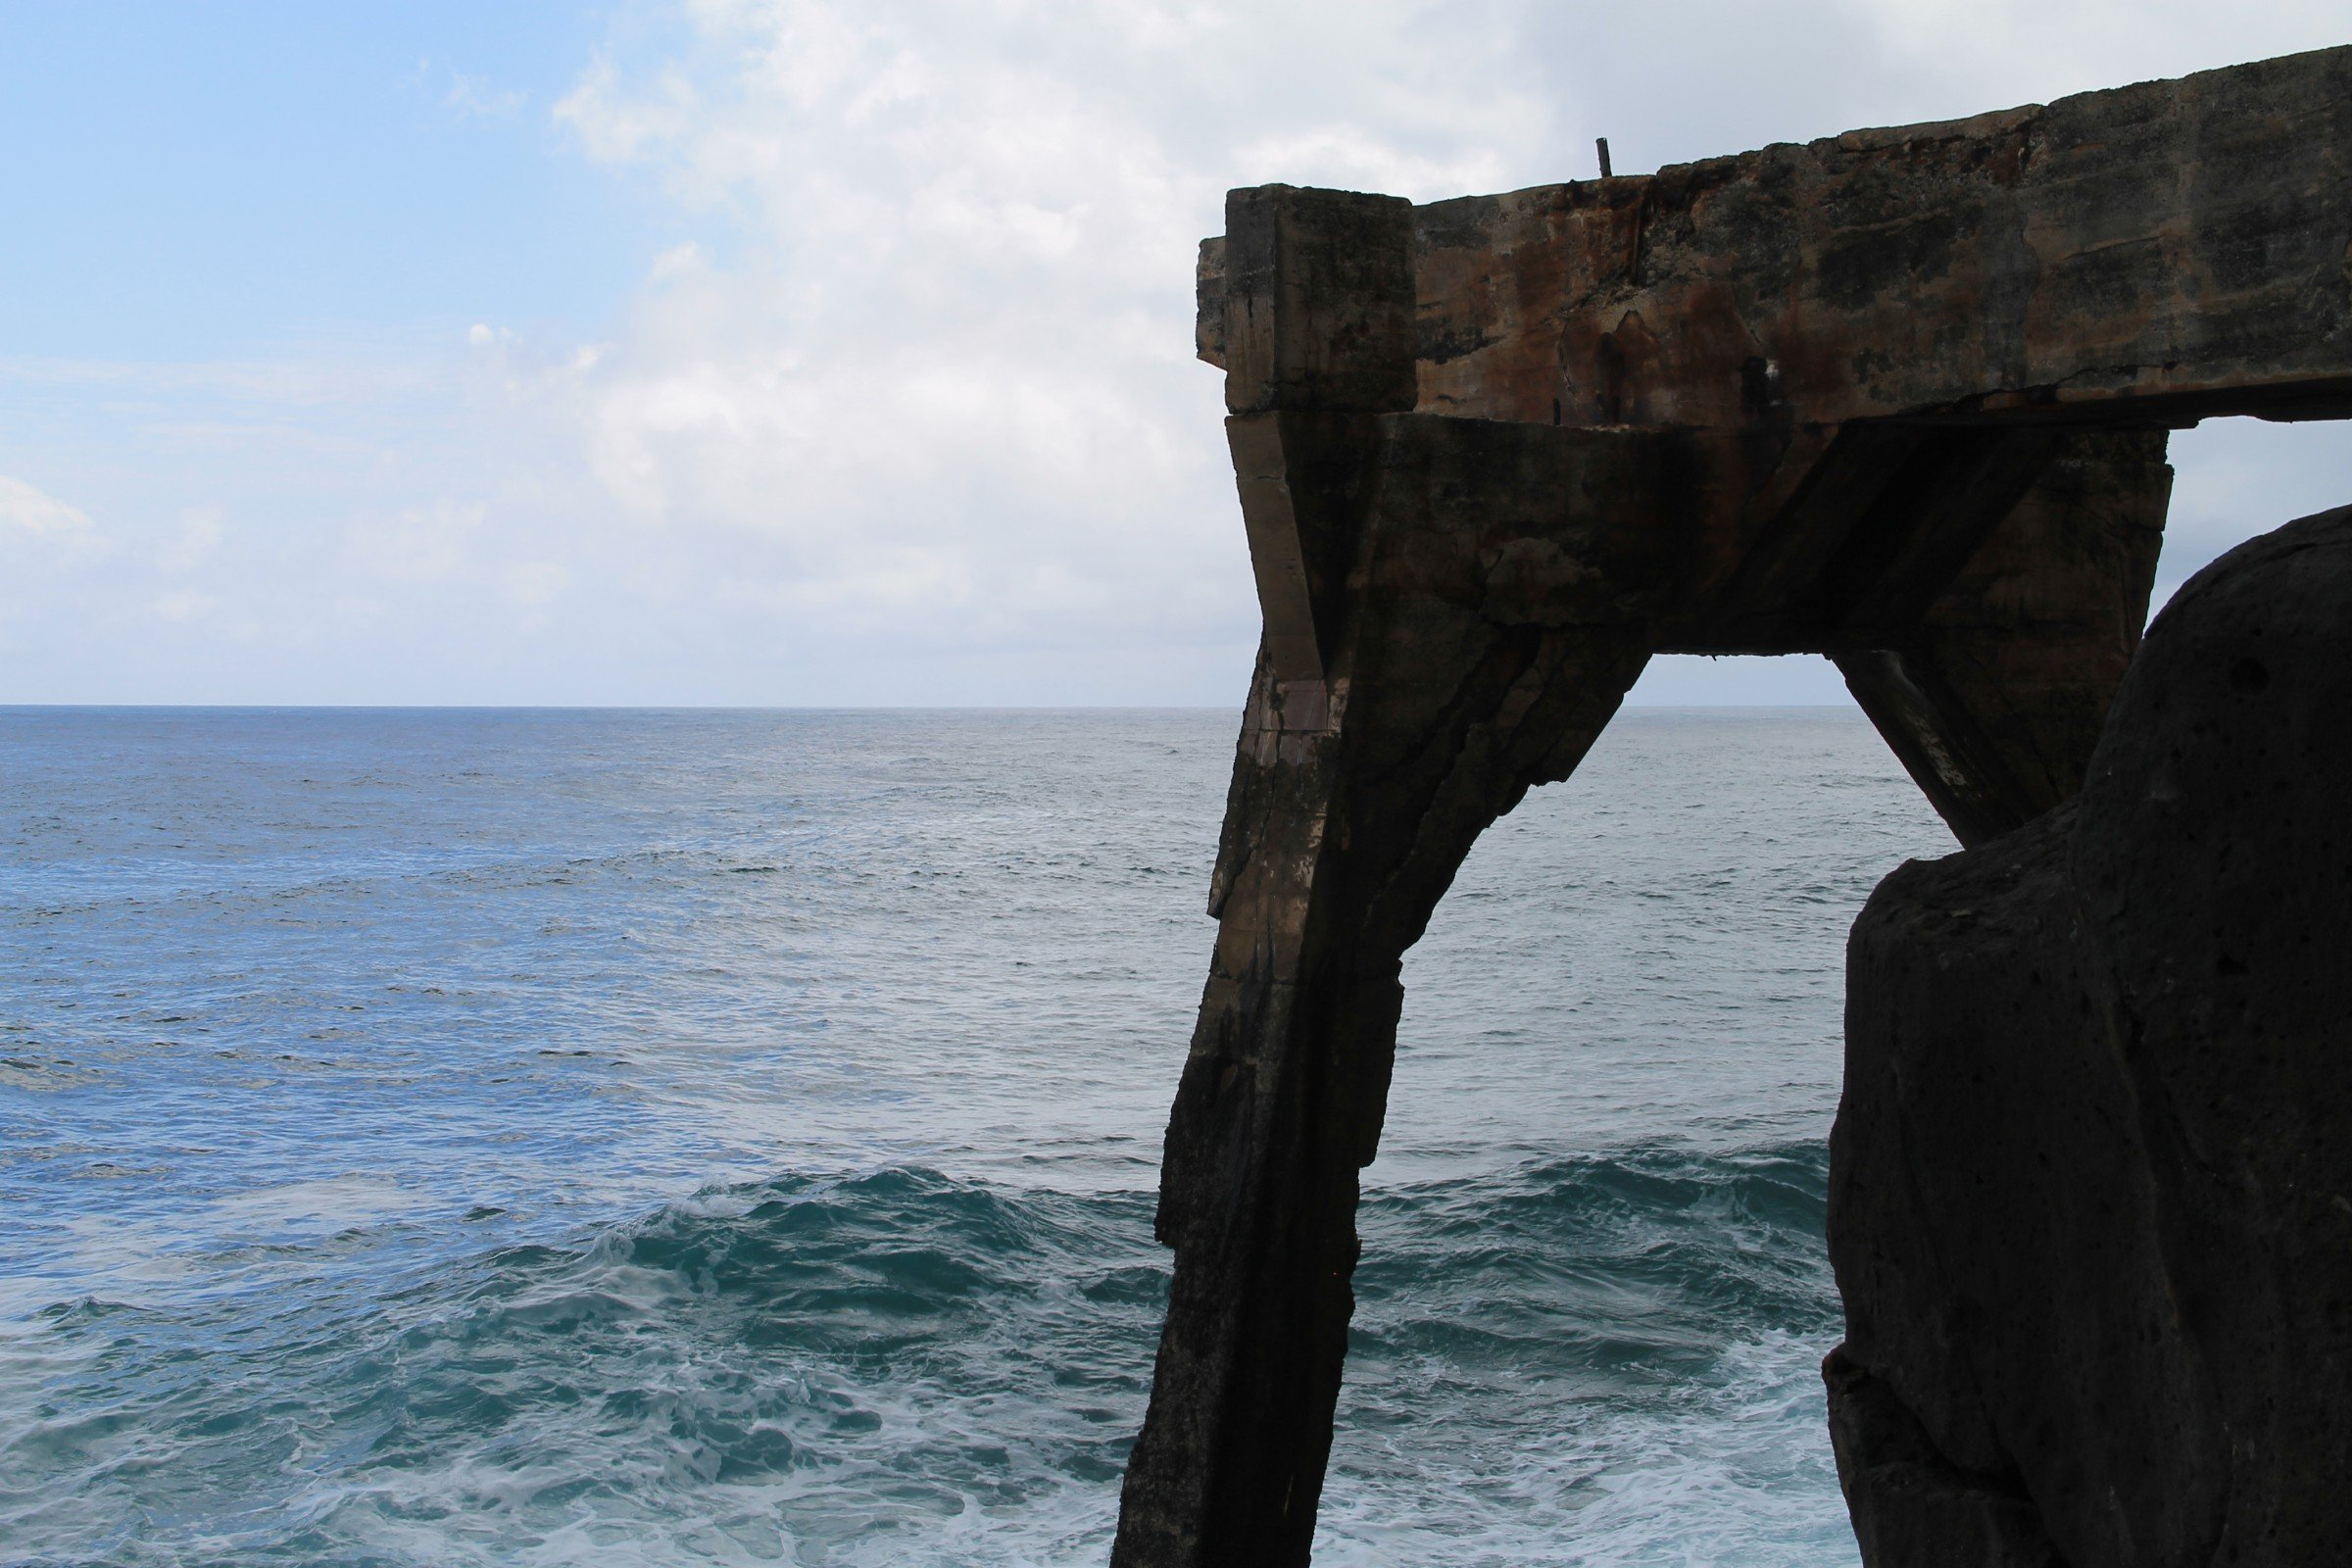 Concrete Structure Over Ocean Waves